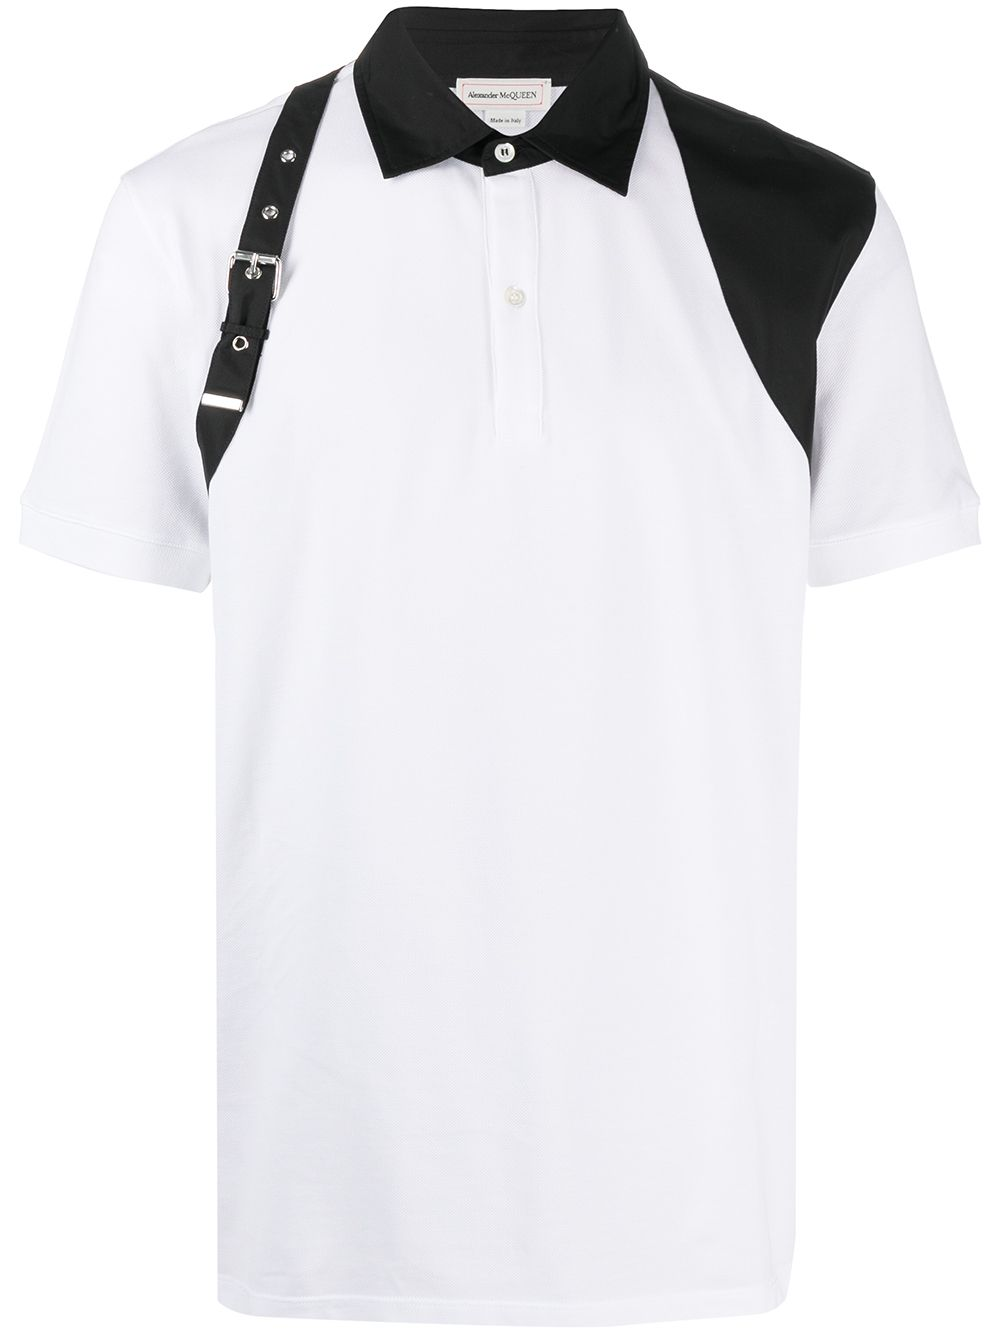 ALEXANDER MCQUEEN Buckle Harness Polo Shirt White/Black